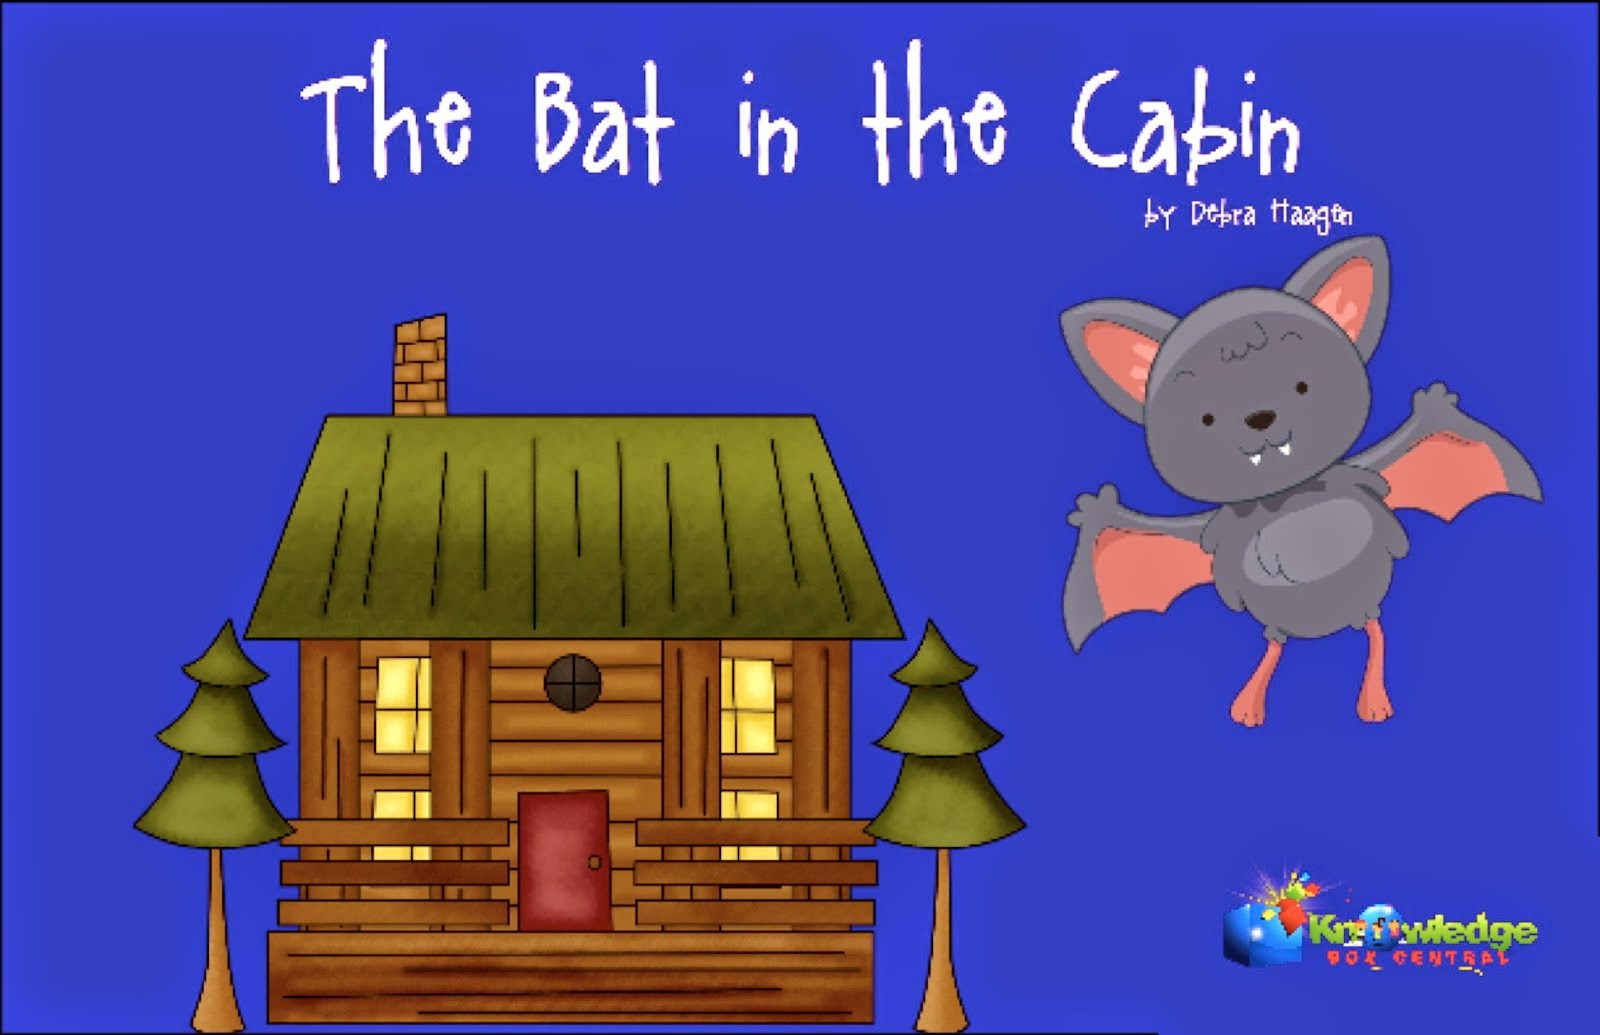 The Bat in the Cabin